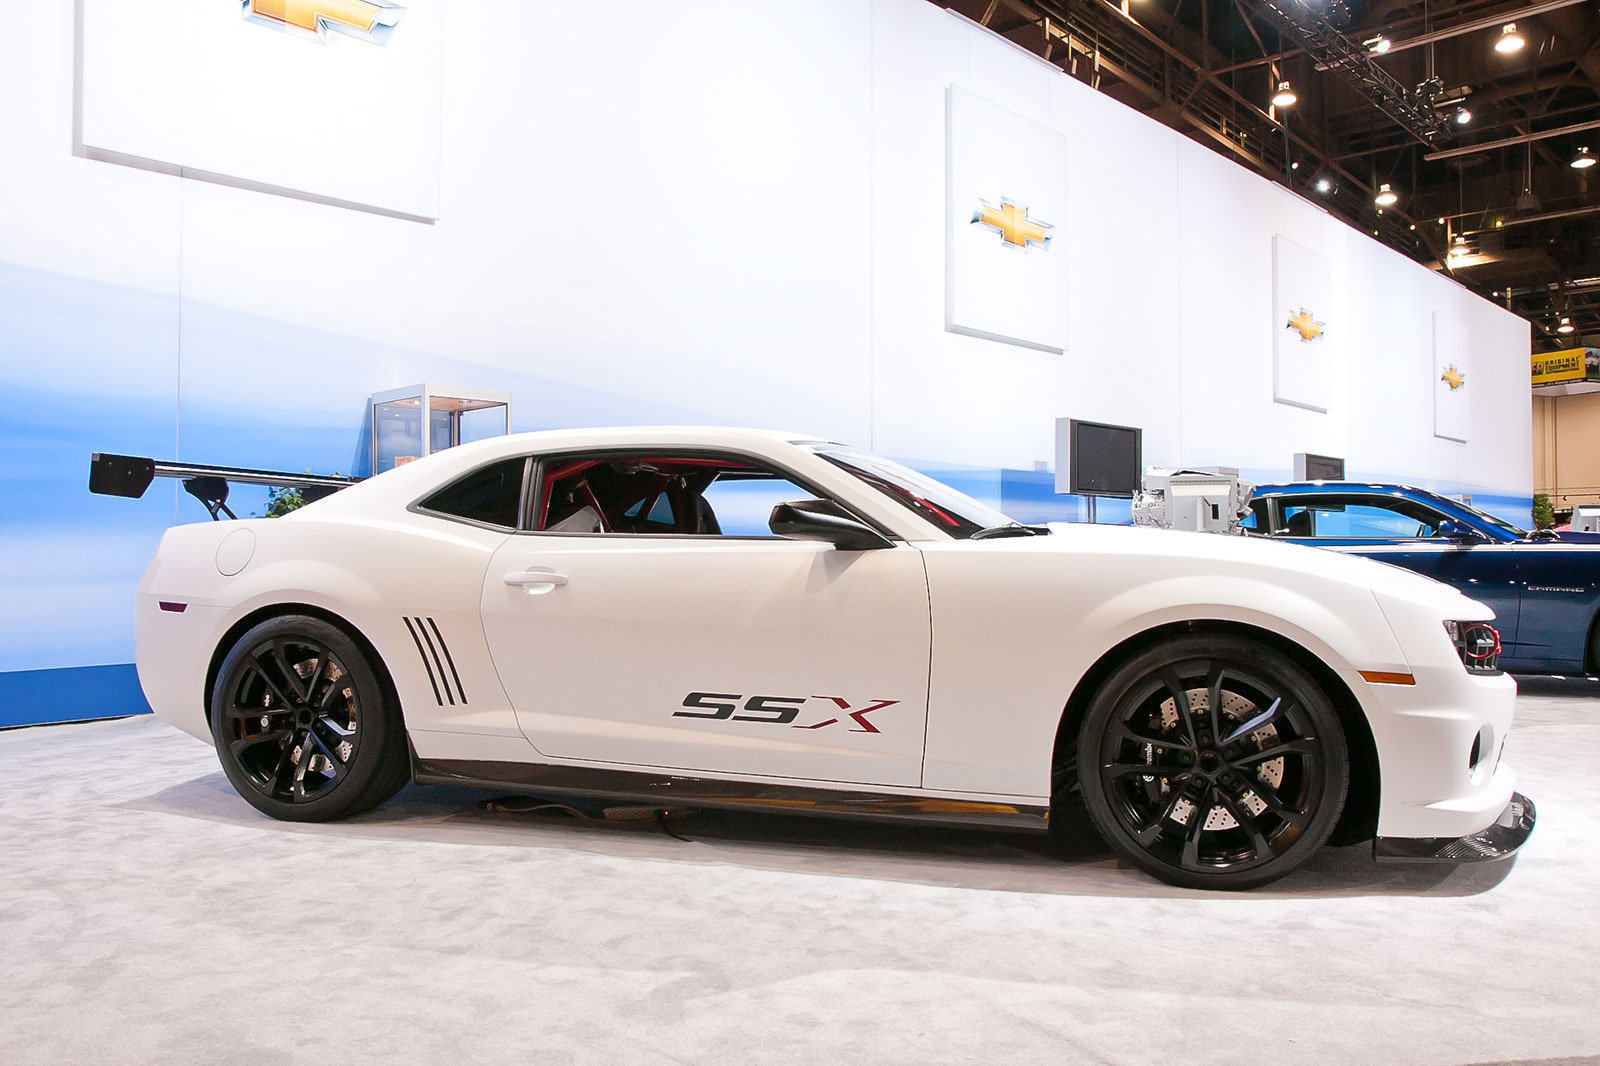 2019 Chevrolet Camaro SSX Concept photo - 5